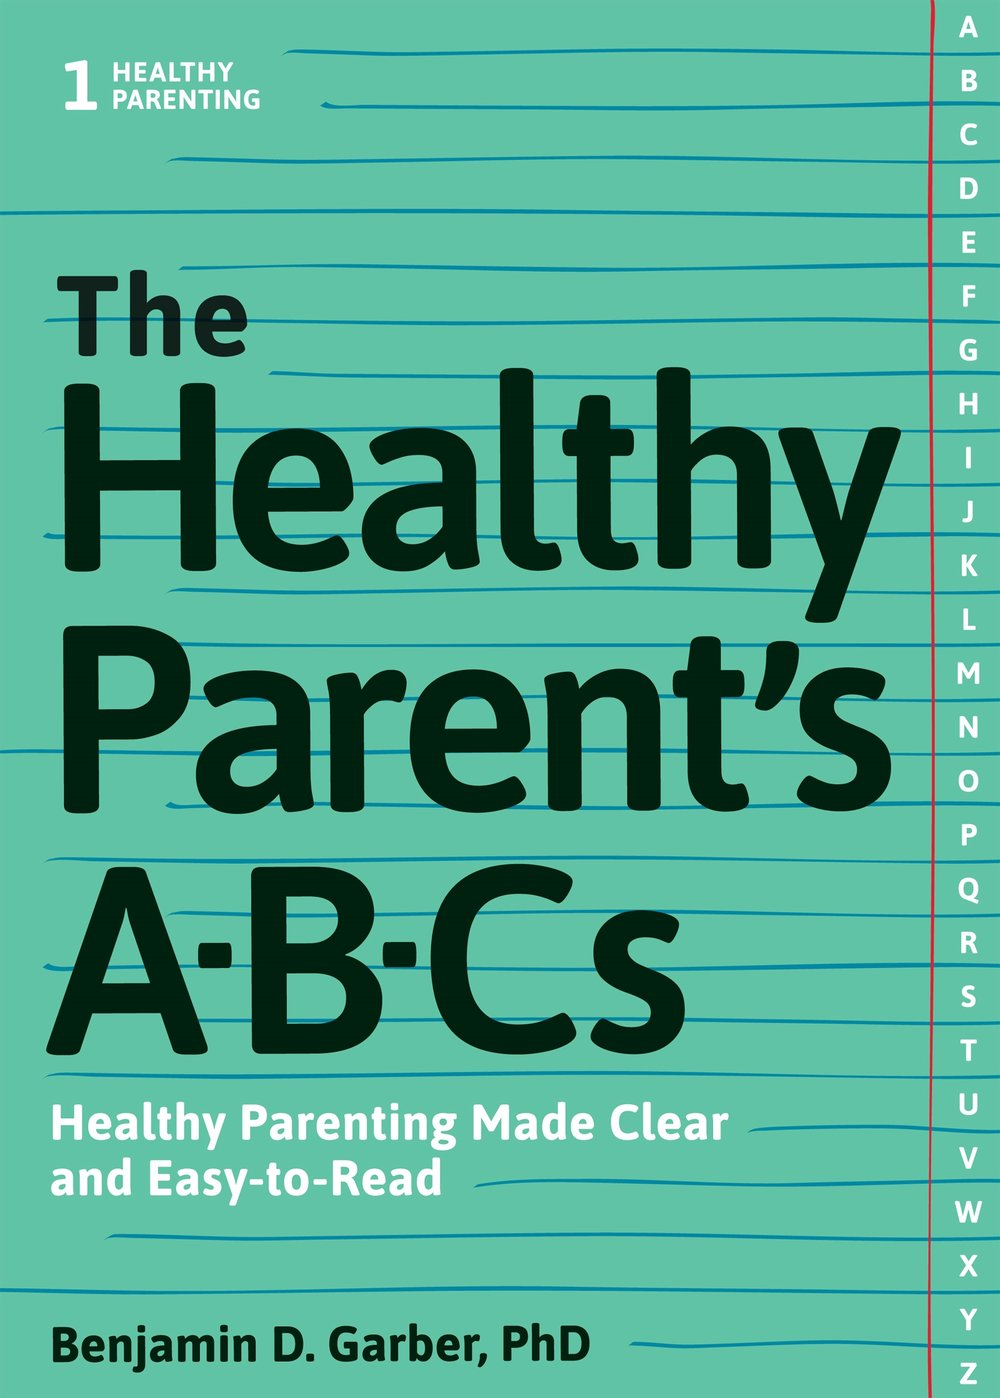 Healthy Parenting Series: Book #1